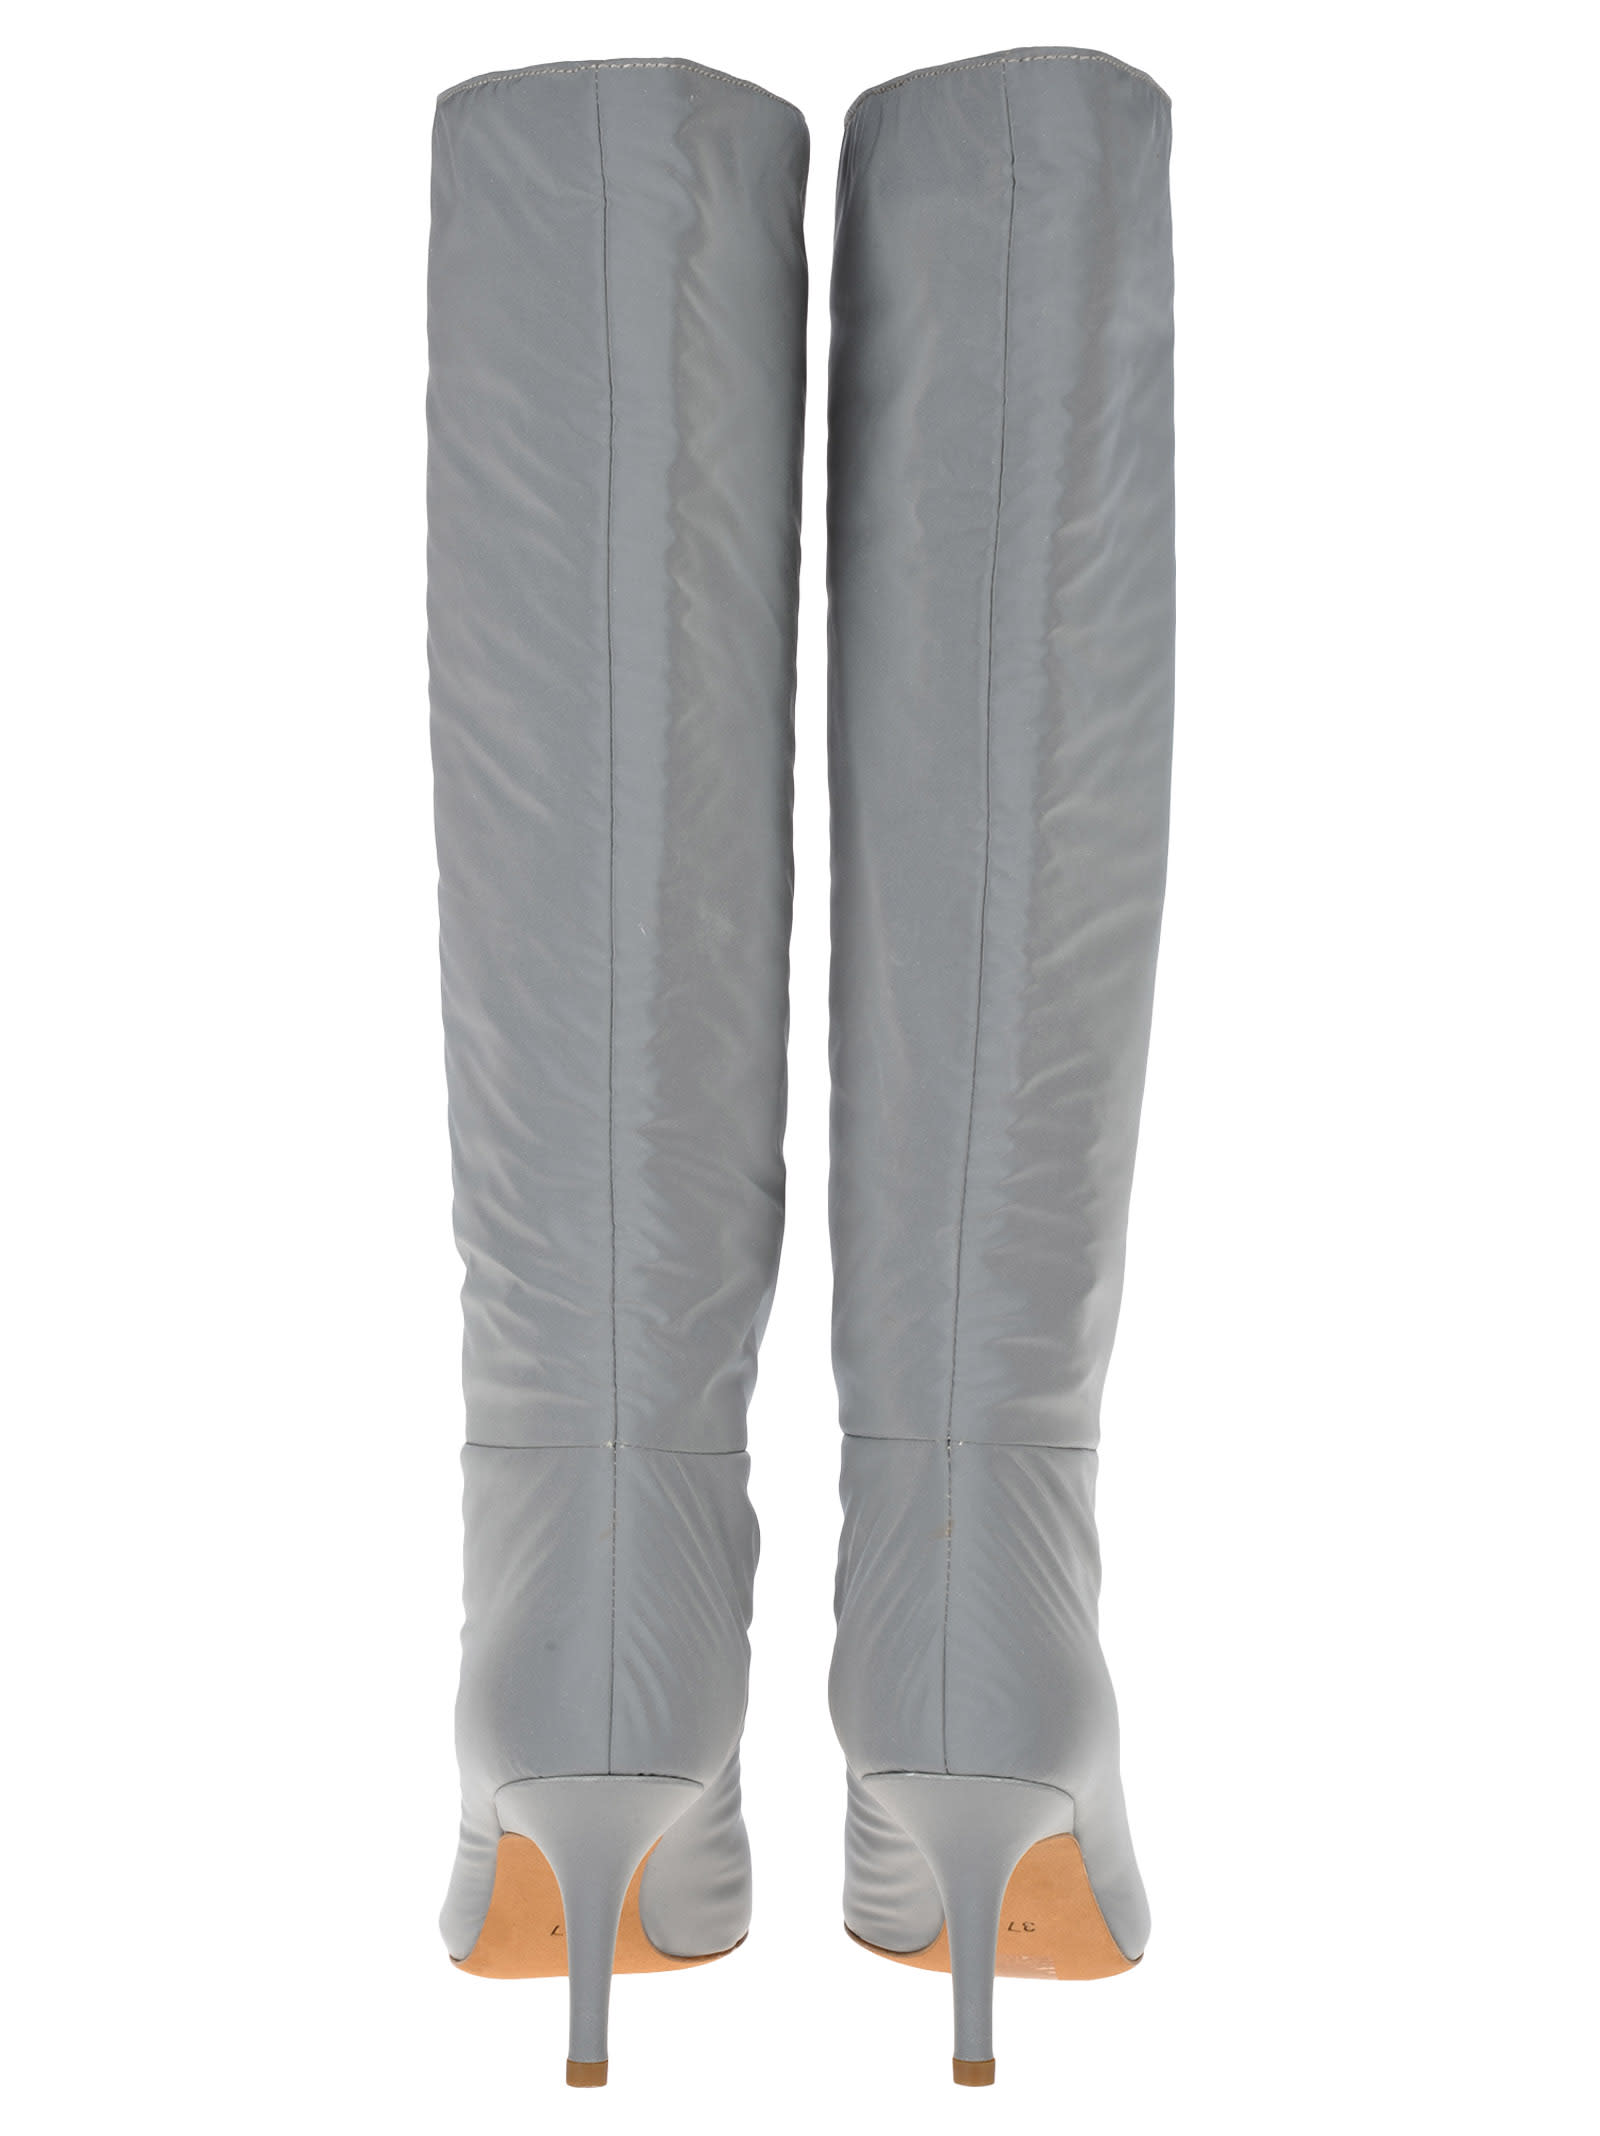 official photos 01198 fa558 Best price on the market at italist   Yeezy Yeezy Kanye West Yeezy  Reflective Knee High Boots